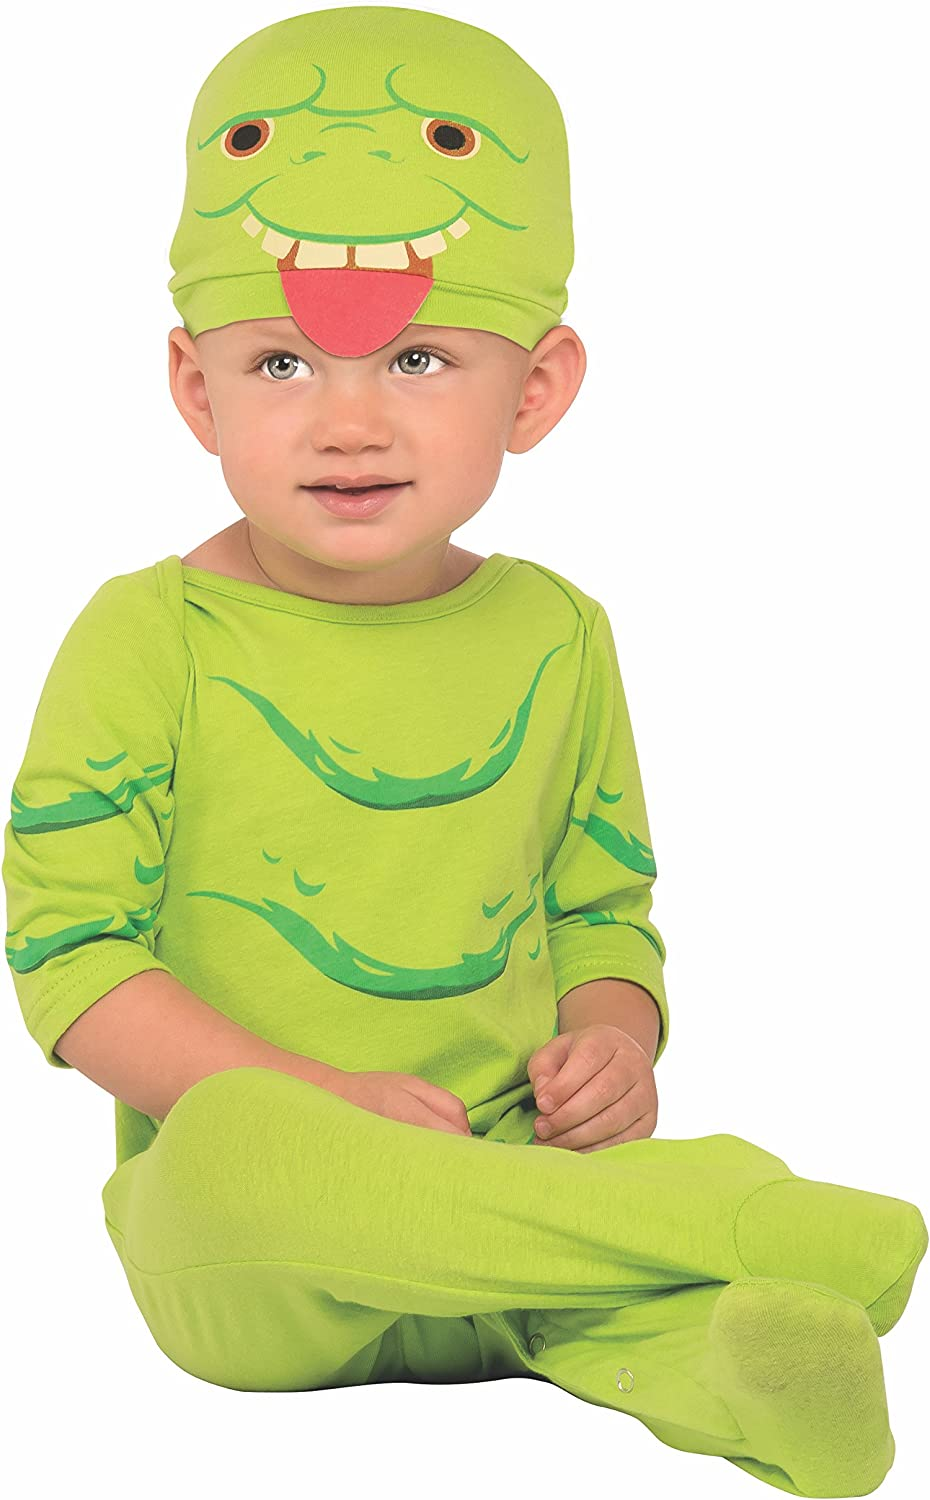 Rubie's Costume Co. Baby Ghostbusters Classic Slimer Costume Jumper